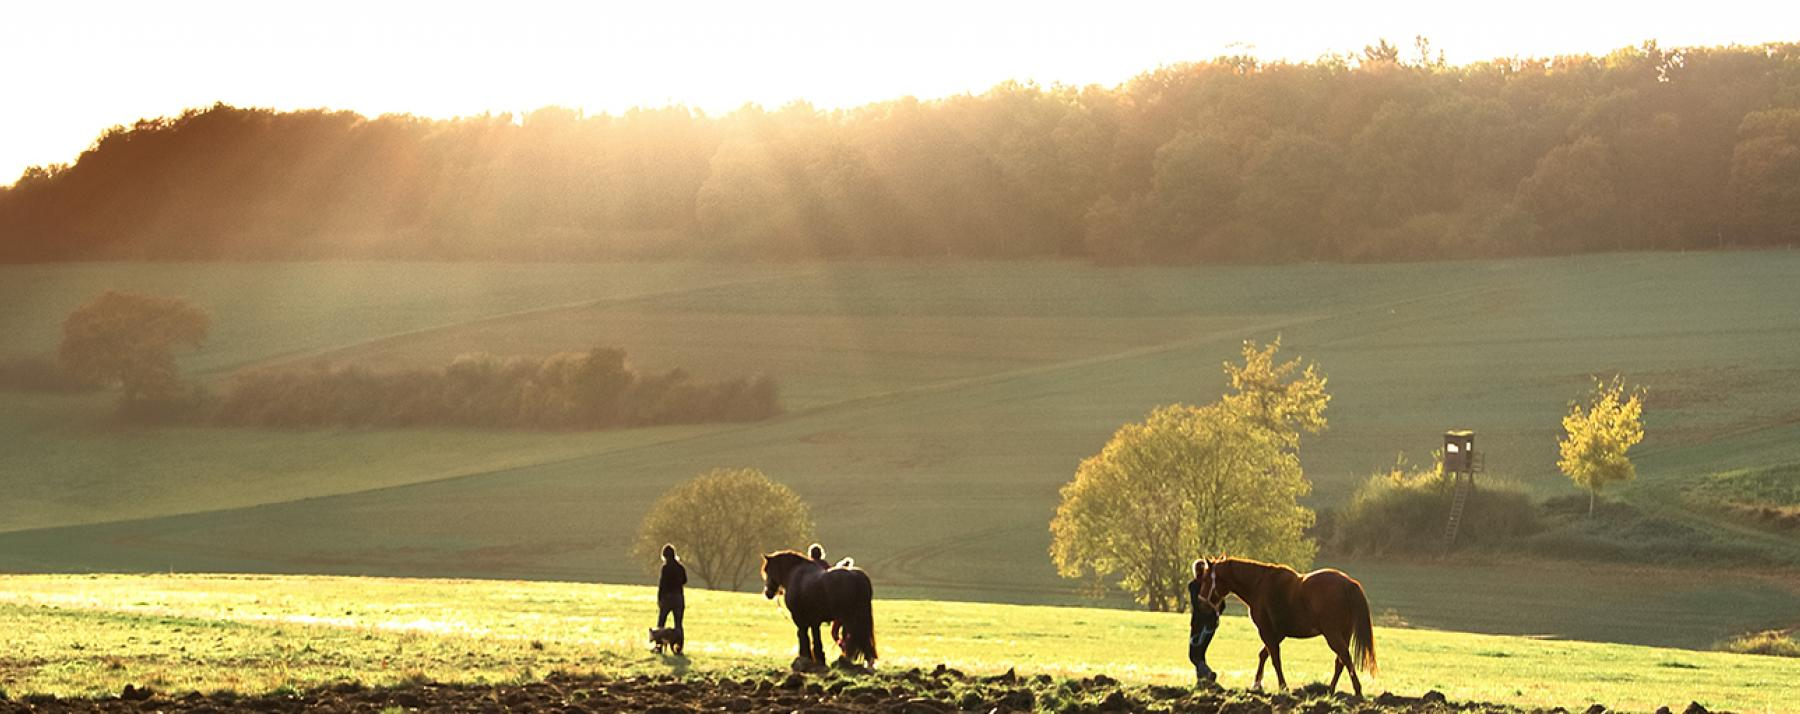 Horses and People in a Field